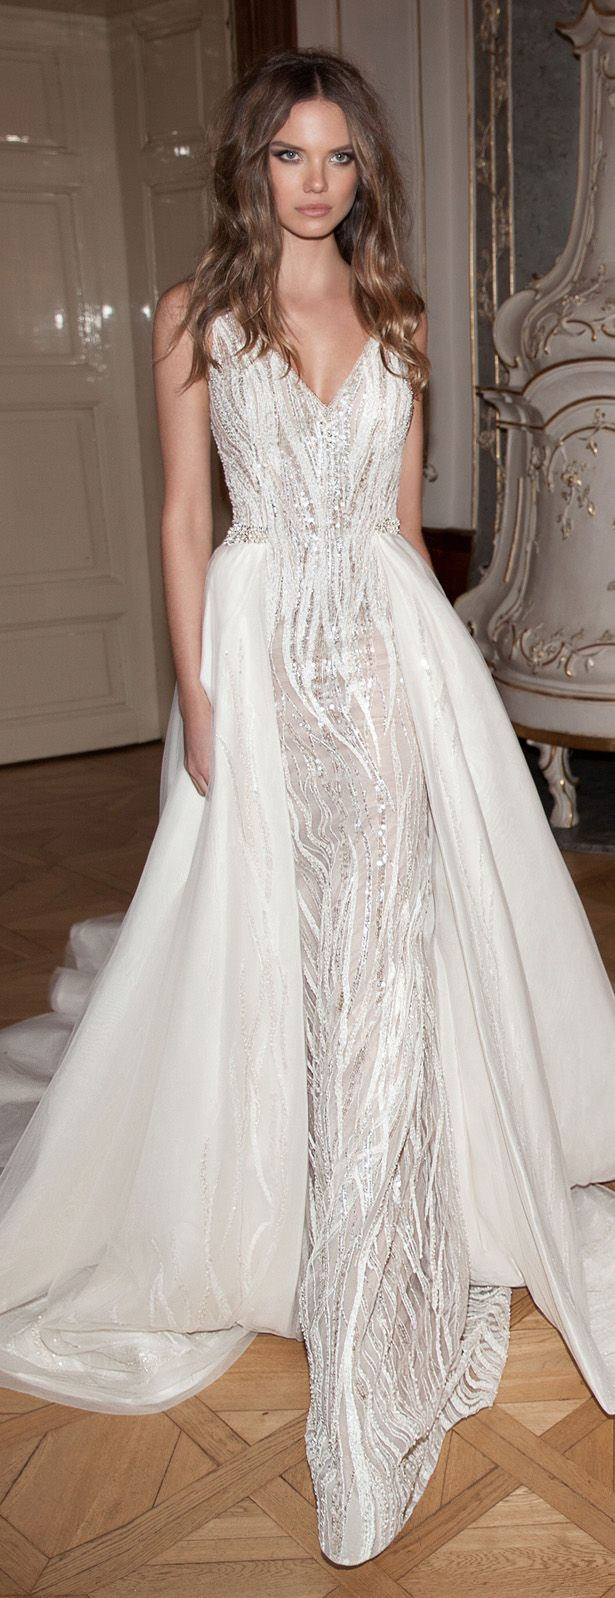 Wedding dresses by berta bridal fall 2015 berta bridal fall wedding dress by berta bridal fall 2015 ombrellifo Choice Image